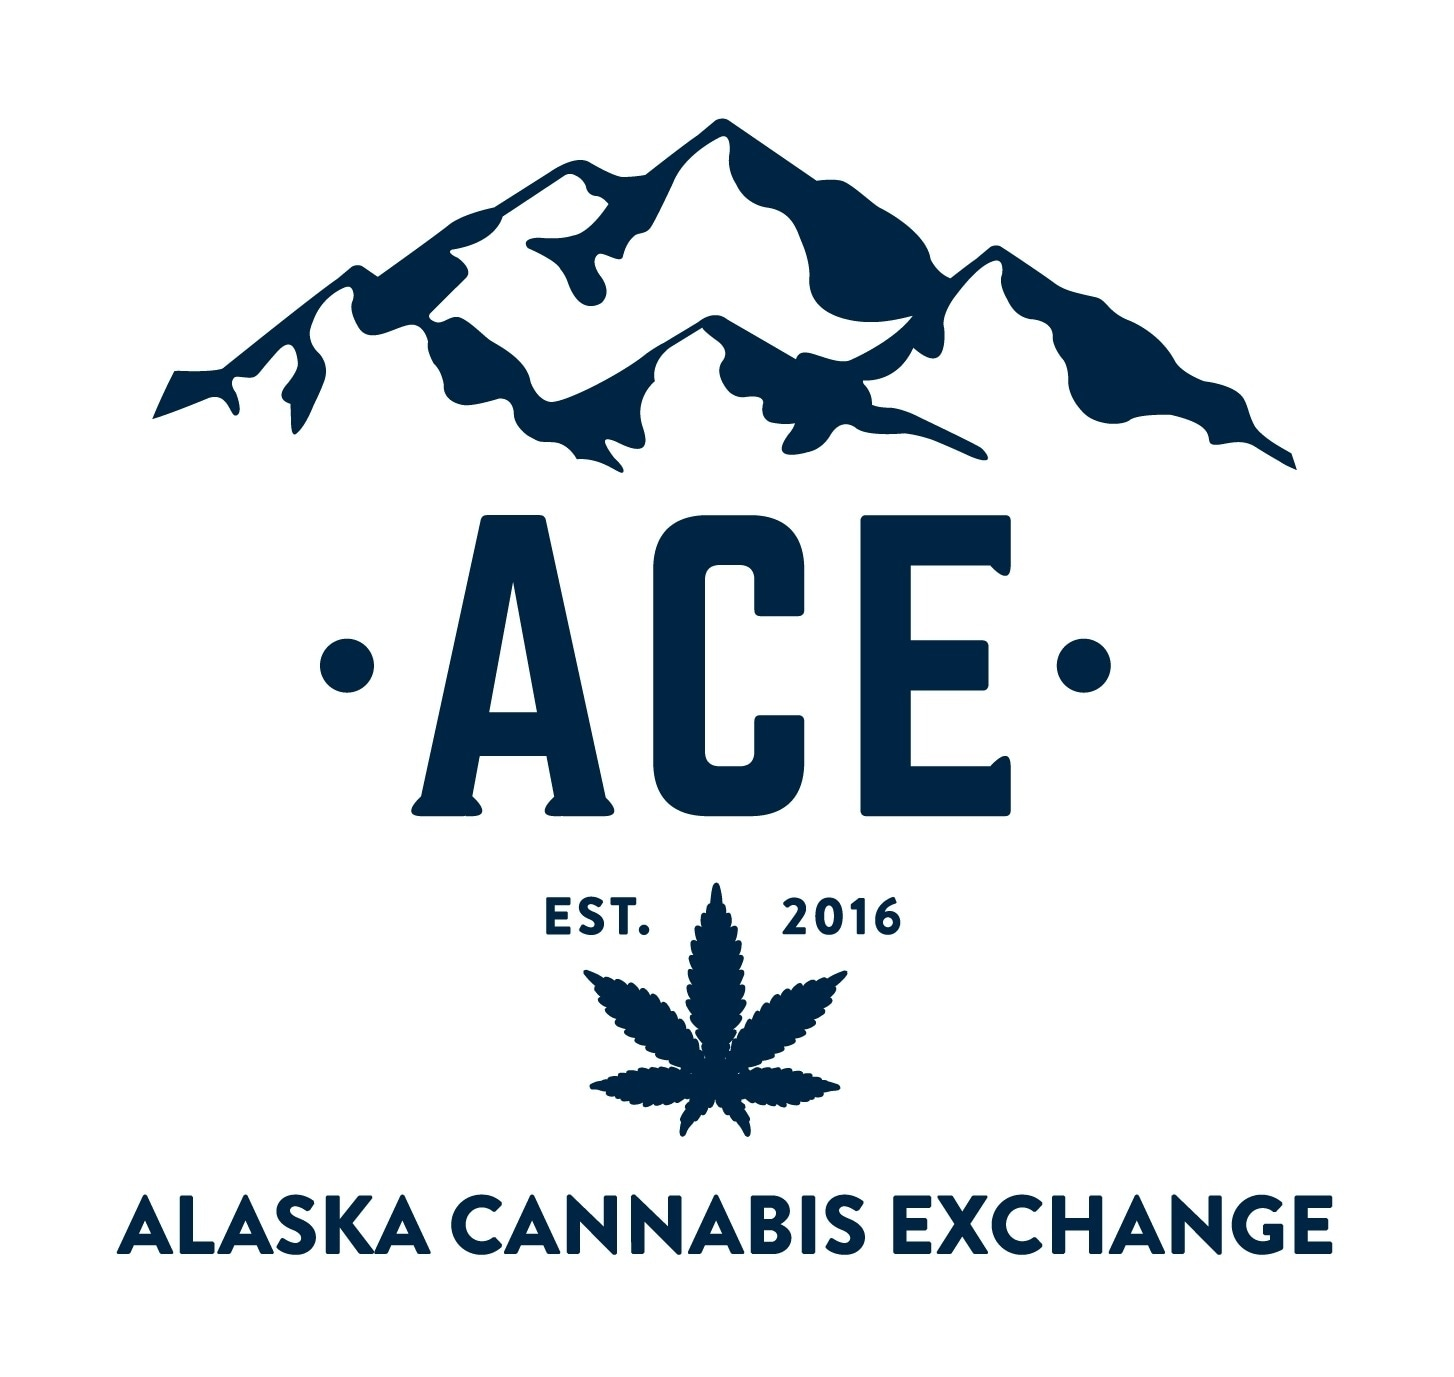 Alaska Cannabis Exchange promo code